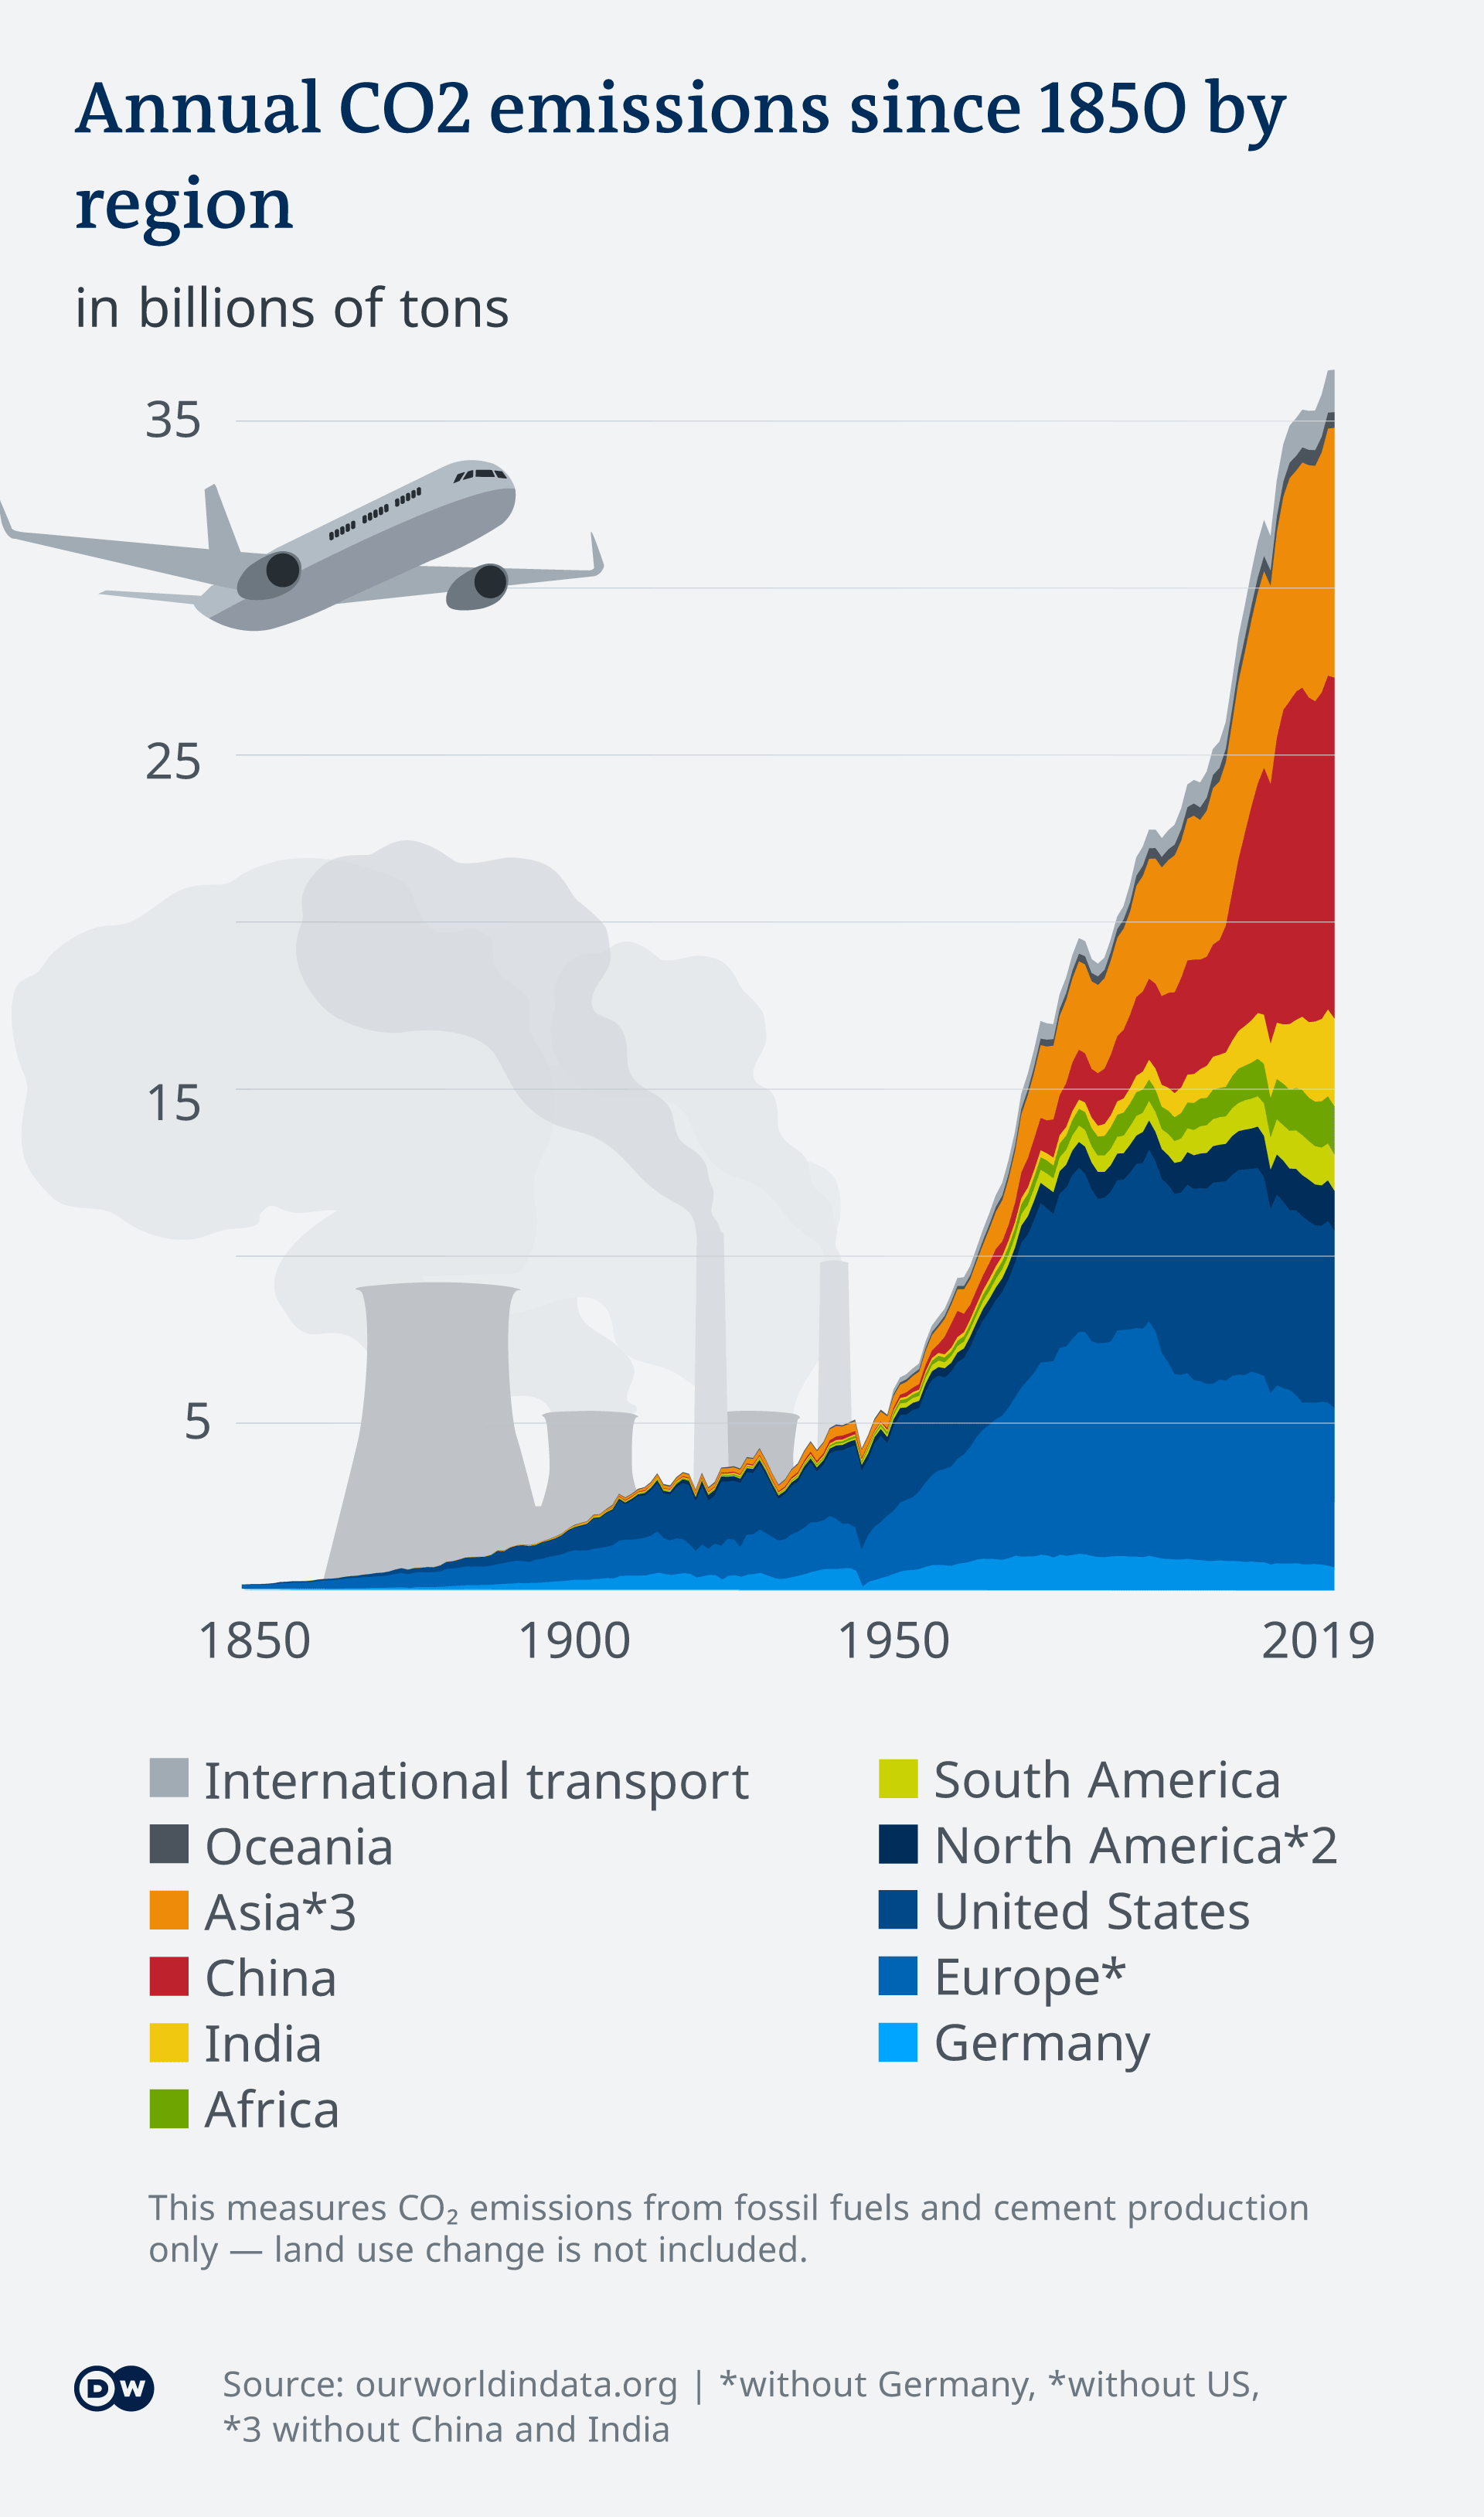 Graphic indicating CO2 emissions over time by region